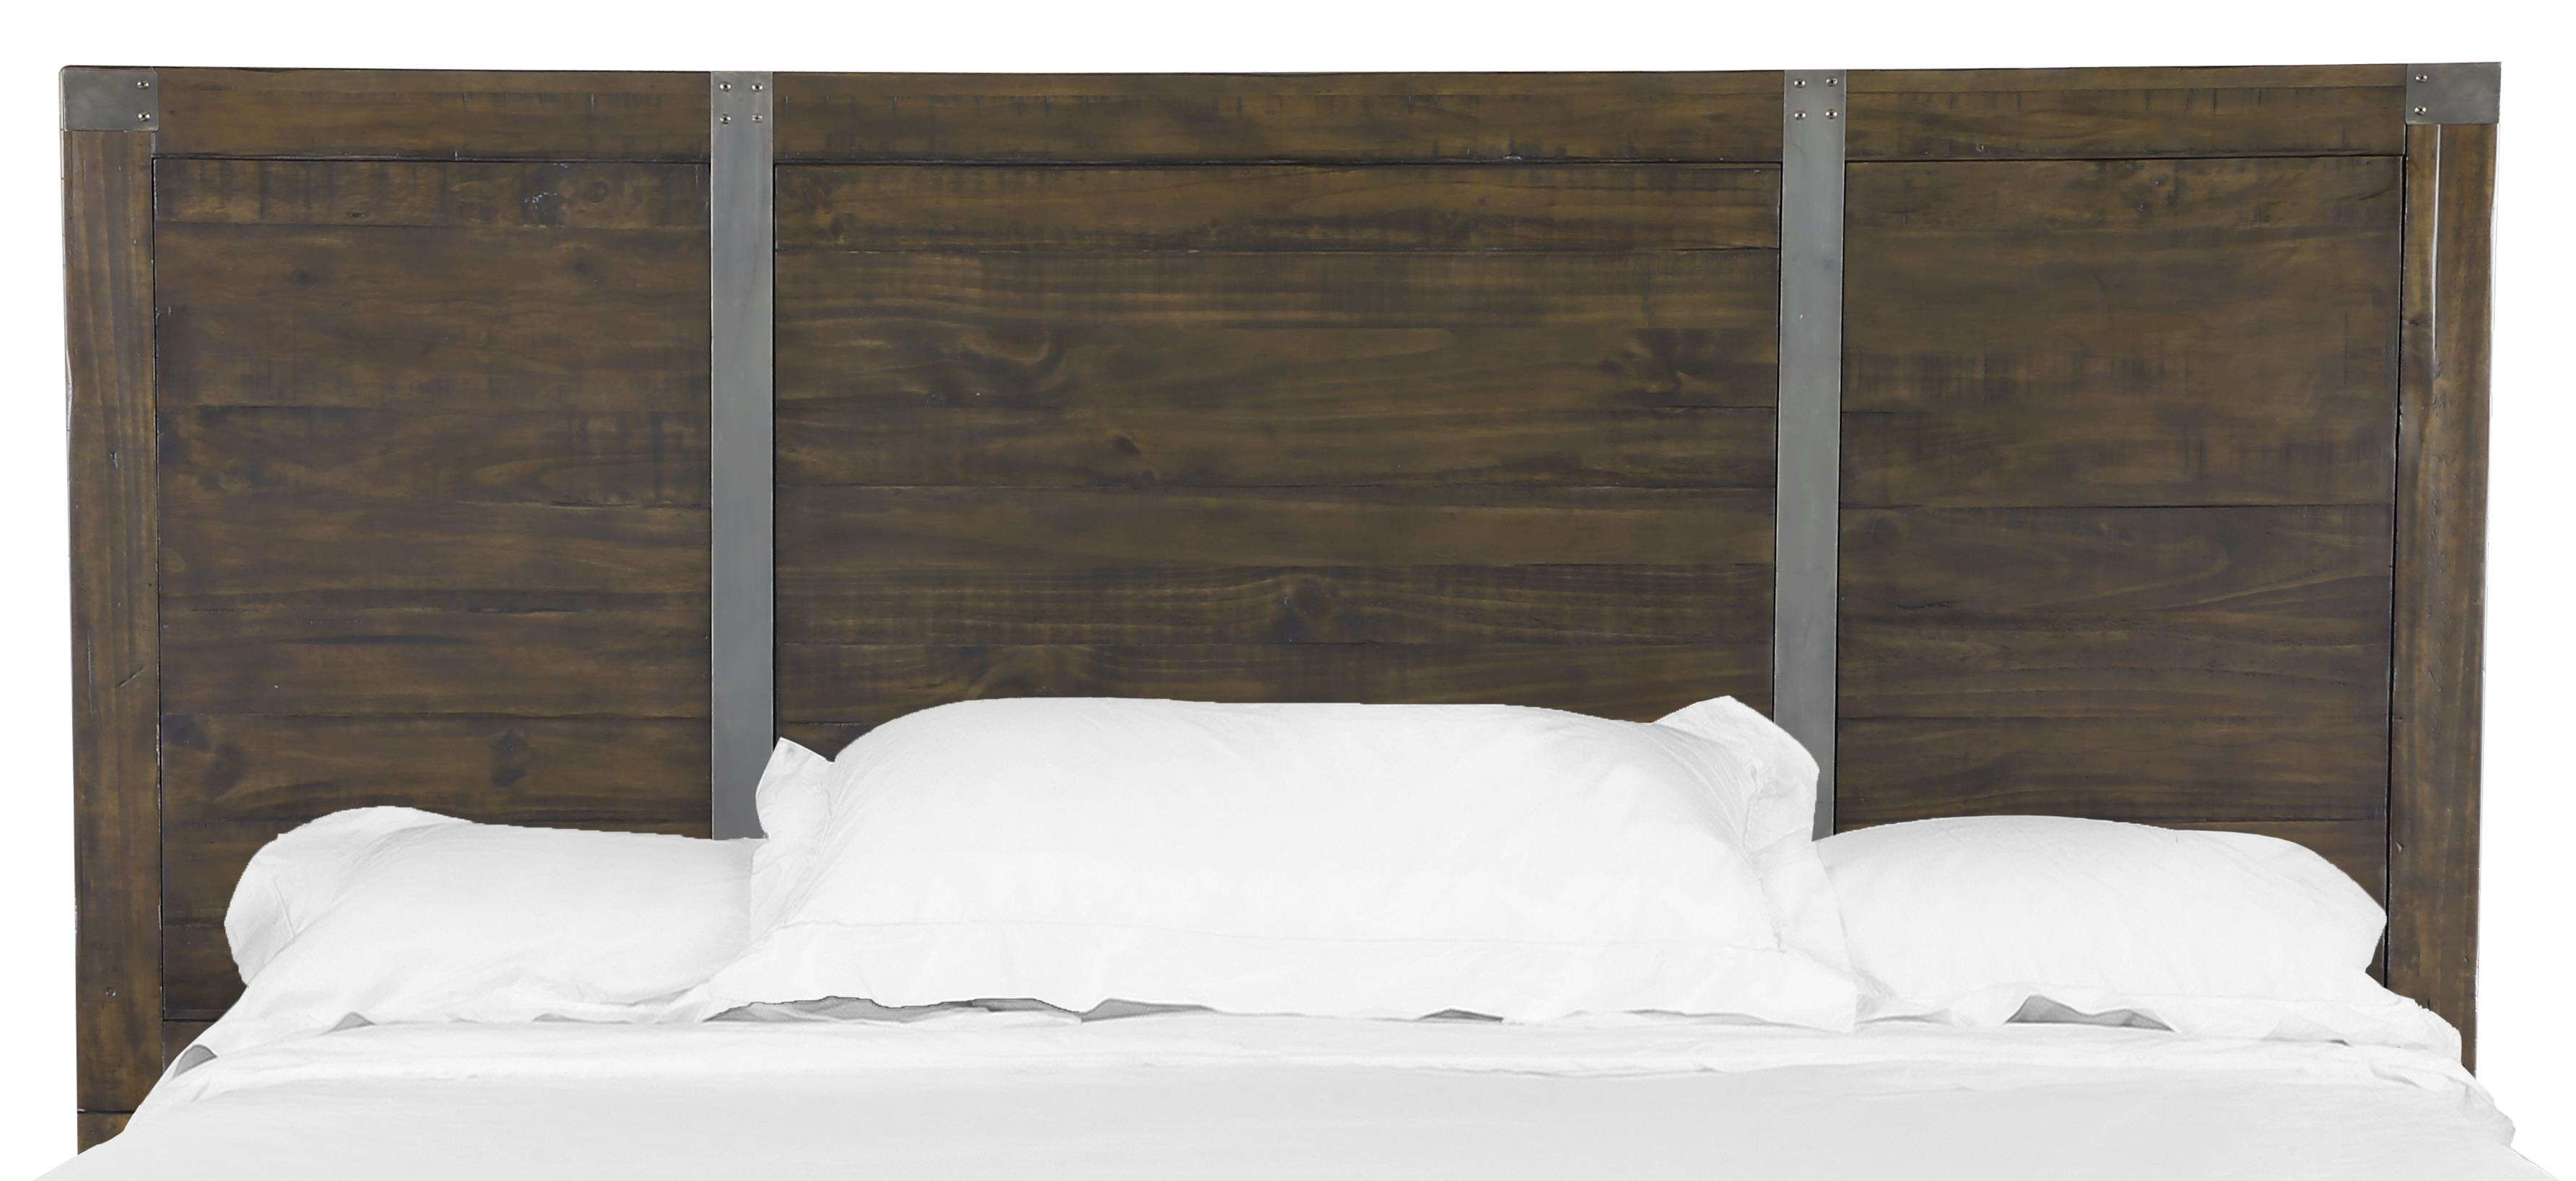 Queen Panel Bed Headboard